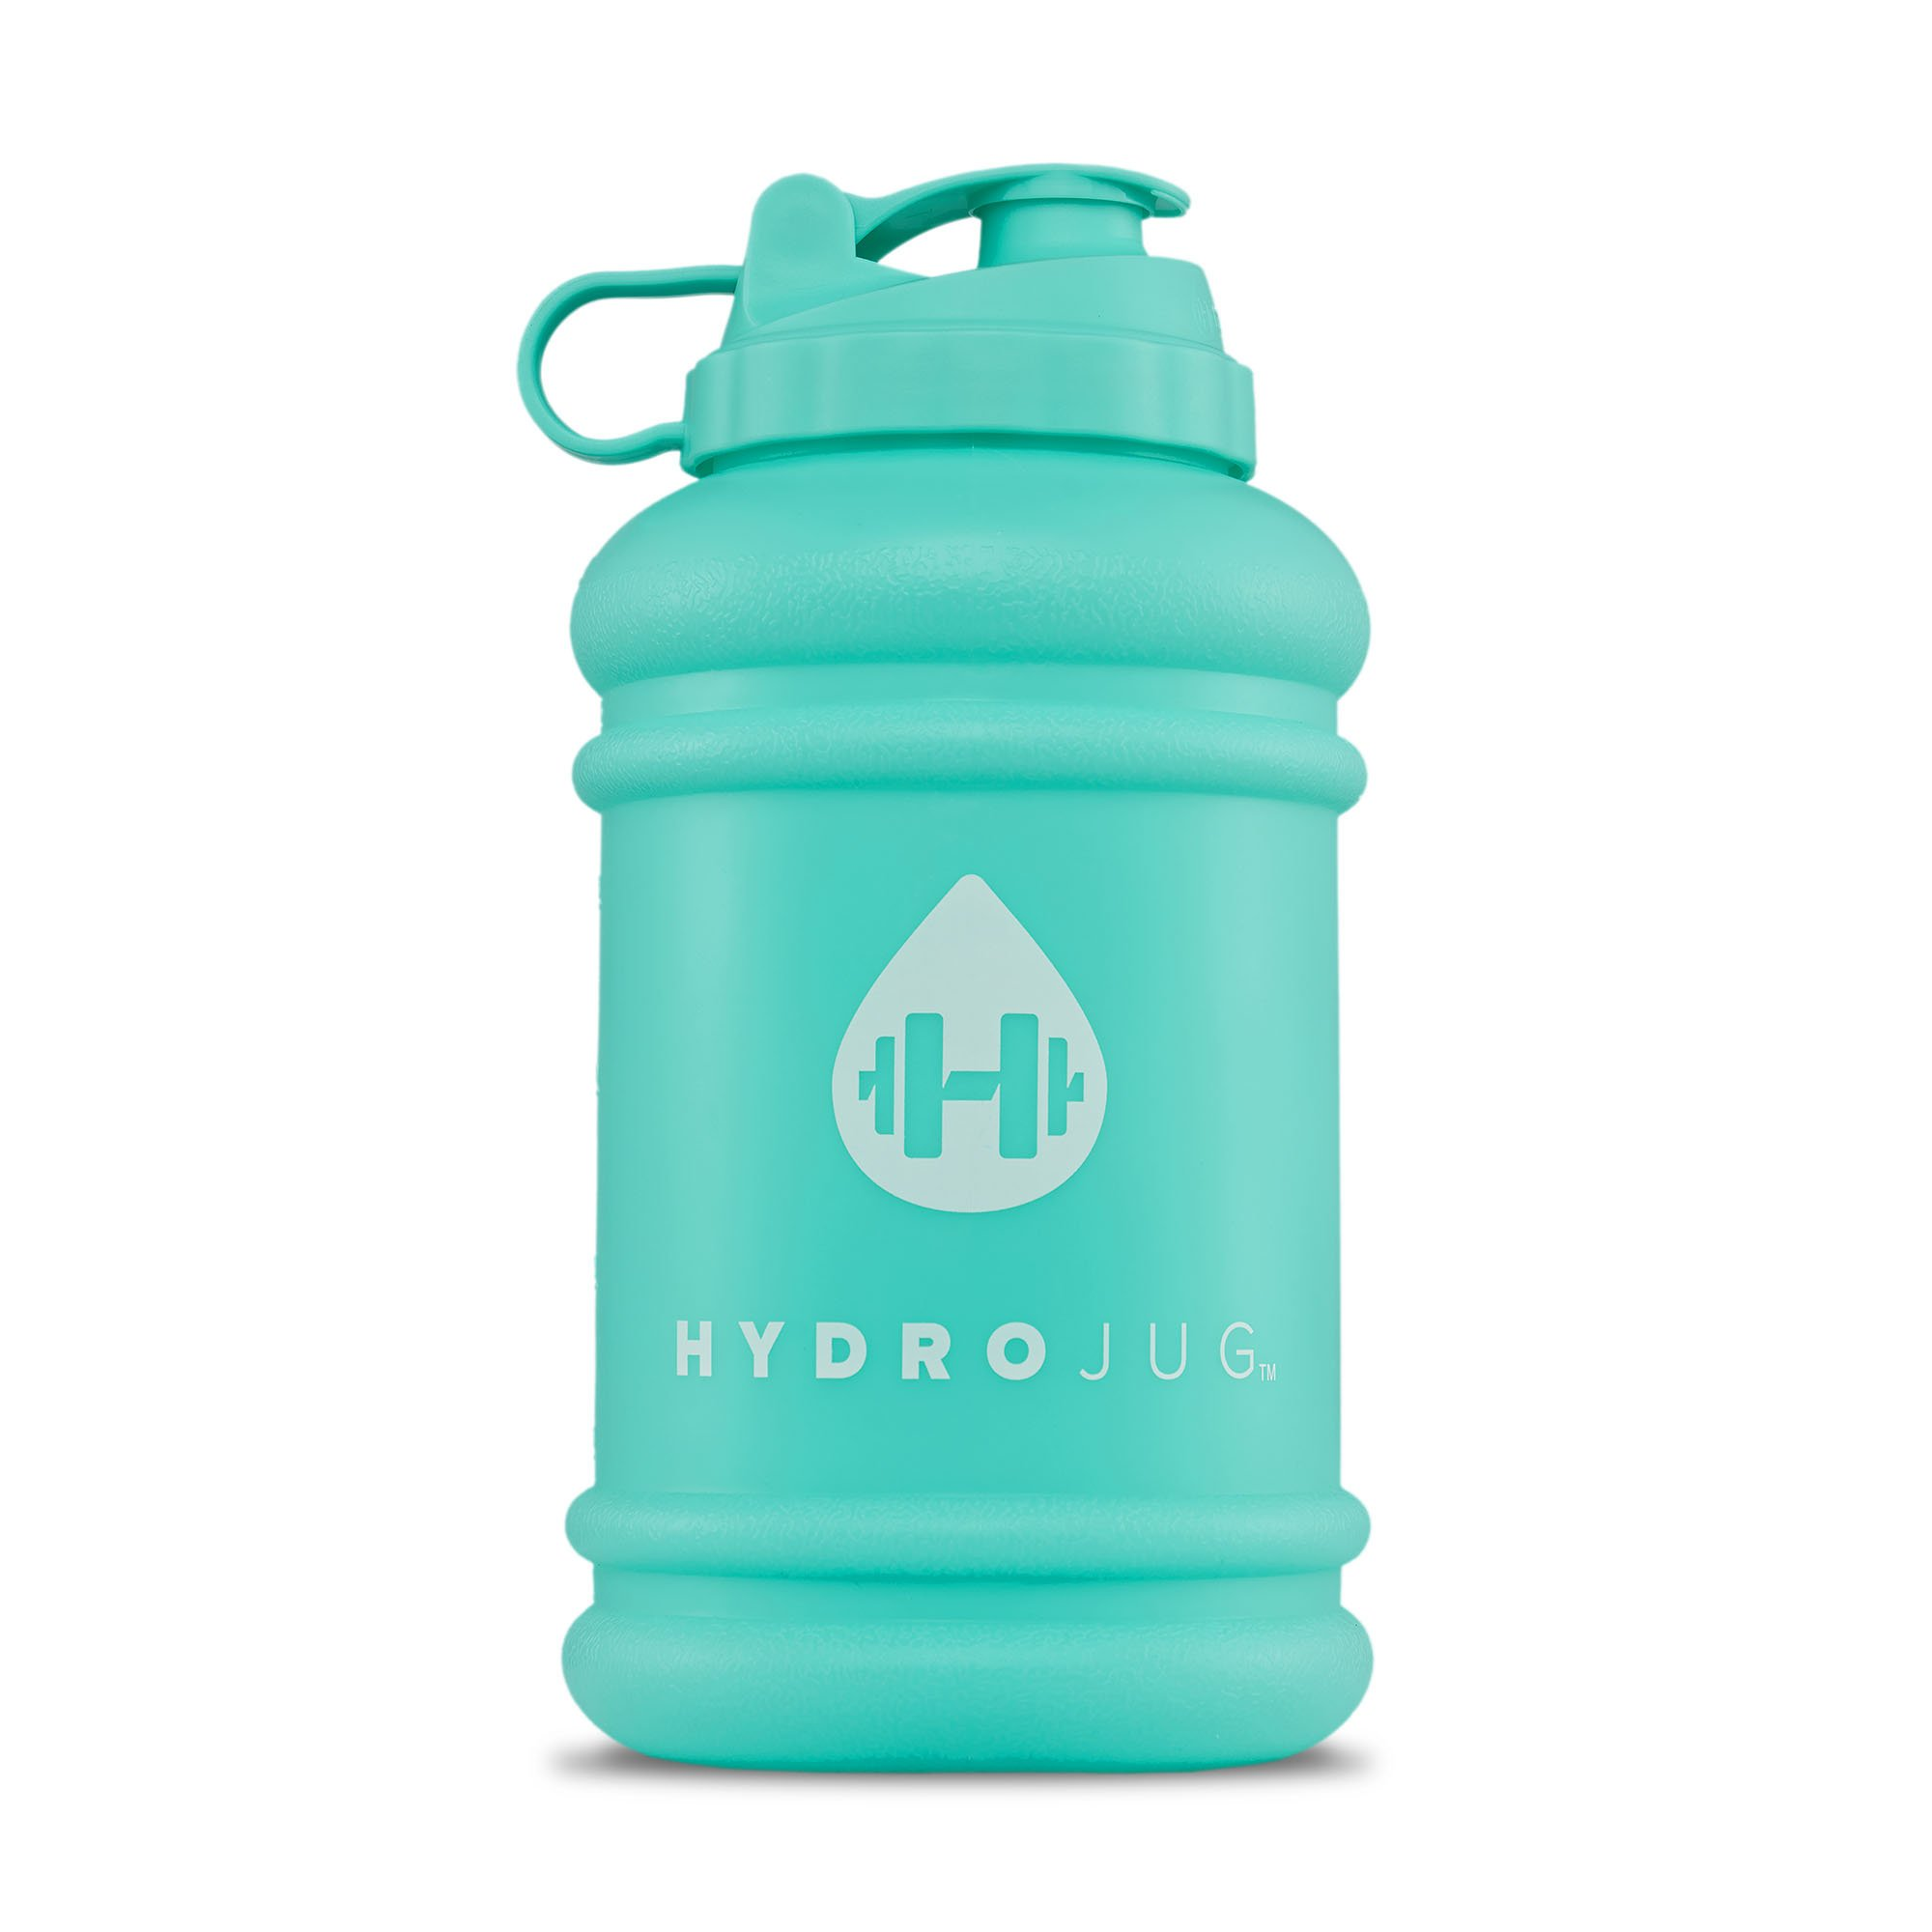 HydroJug water bottle, best Christmas gifts